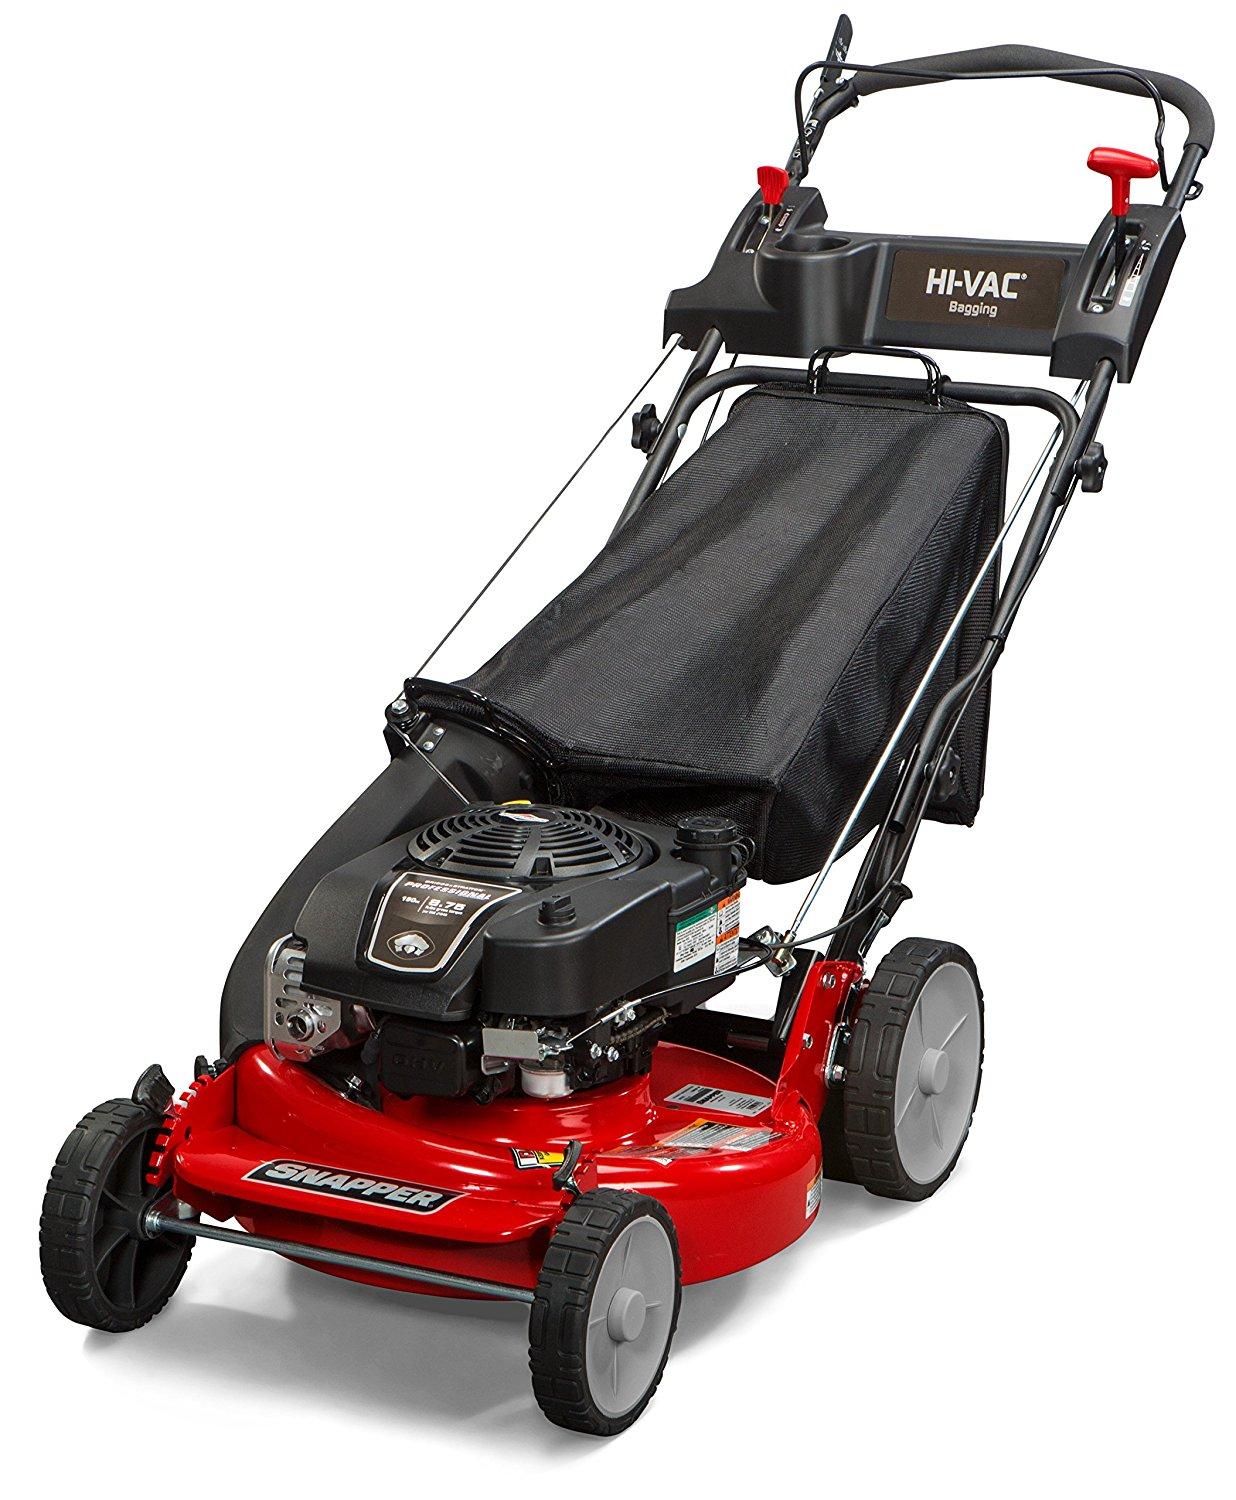 Lawn Care Equipment Made In The USA